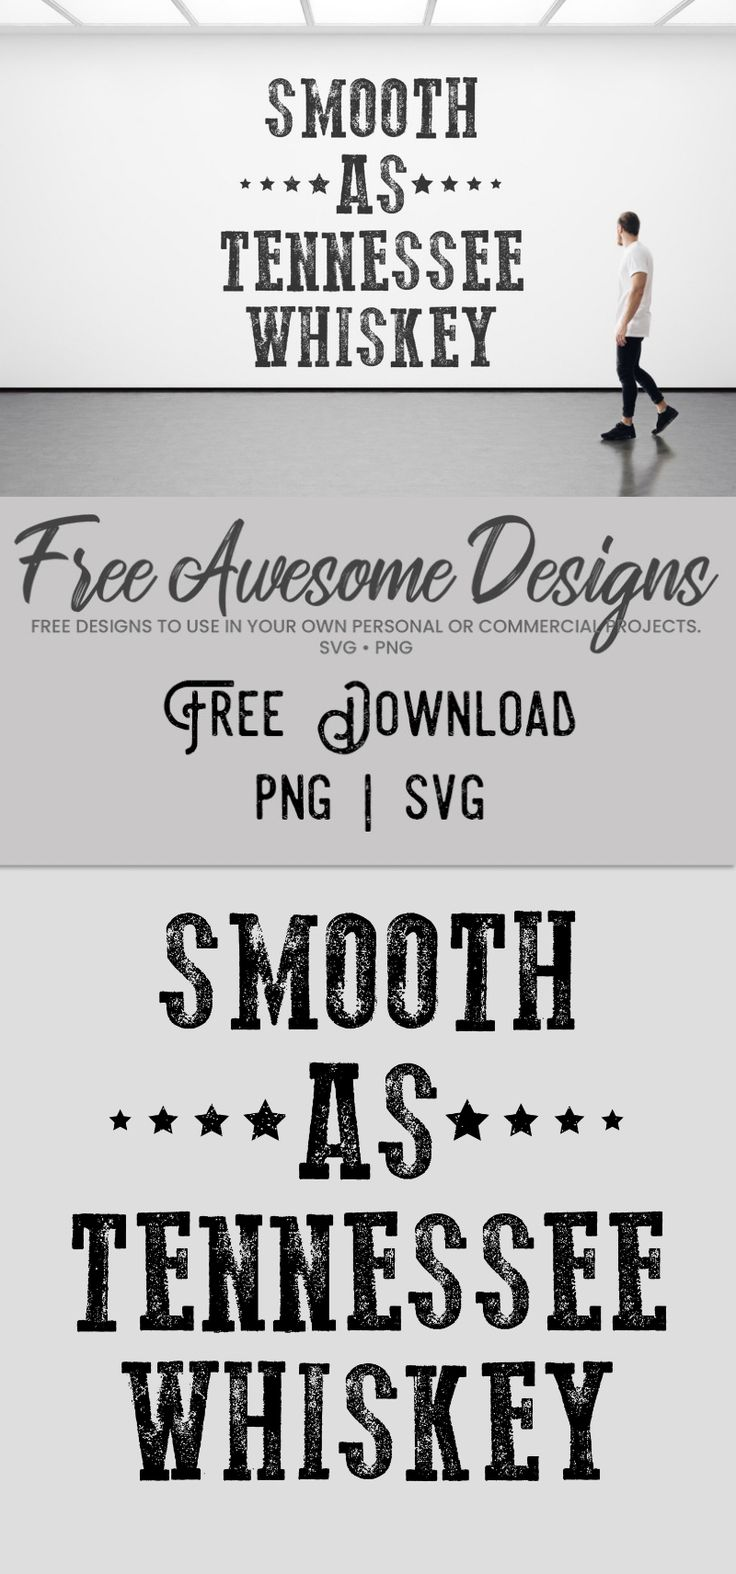 Smooth As Tennessee Whiskey Free Design SVG PNG Free